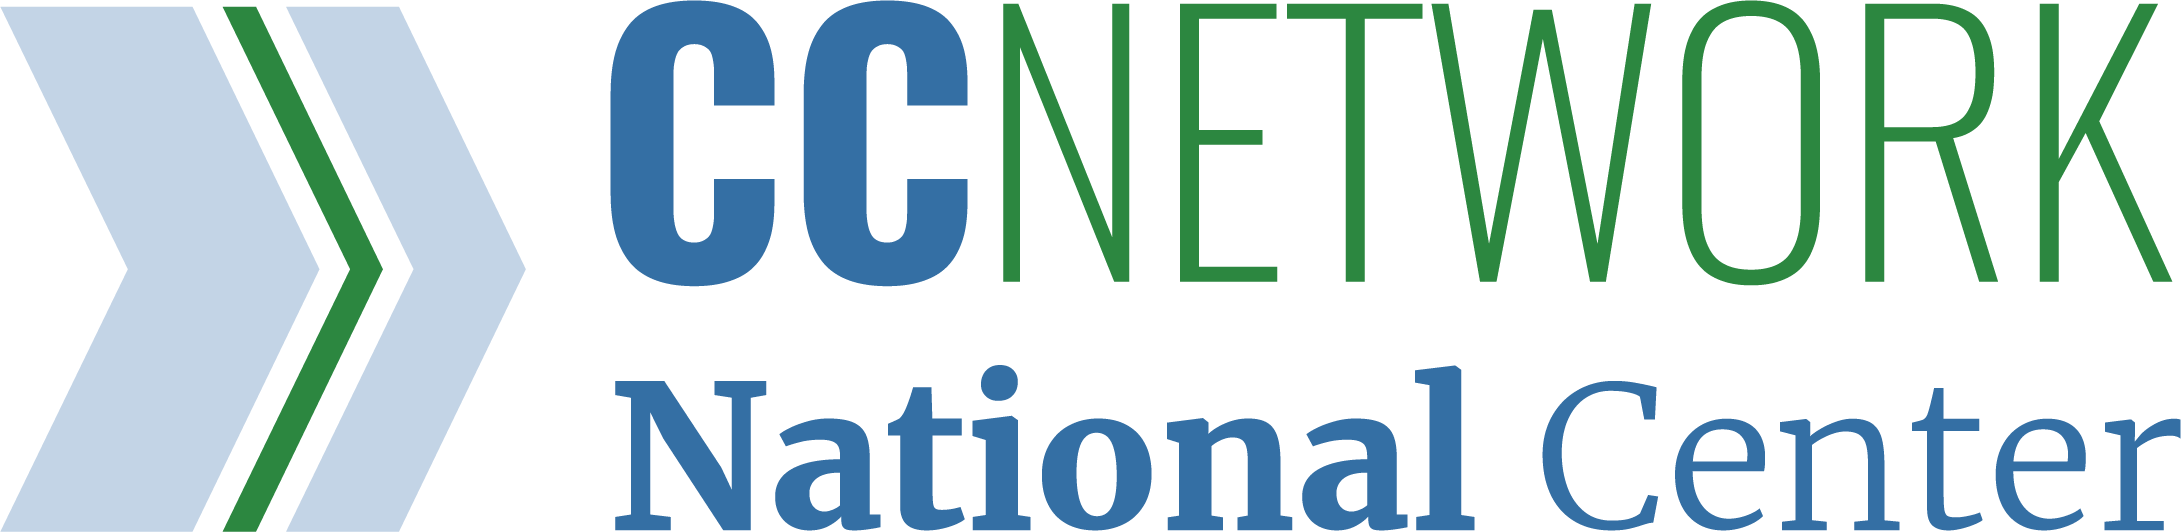 CC Network National Center logo